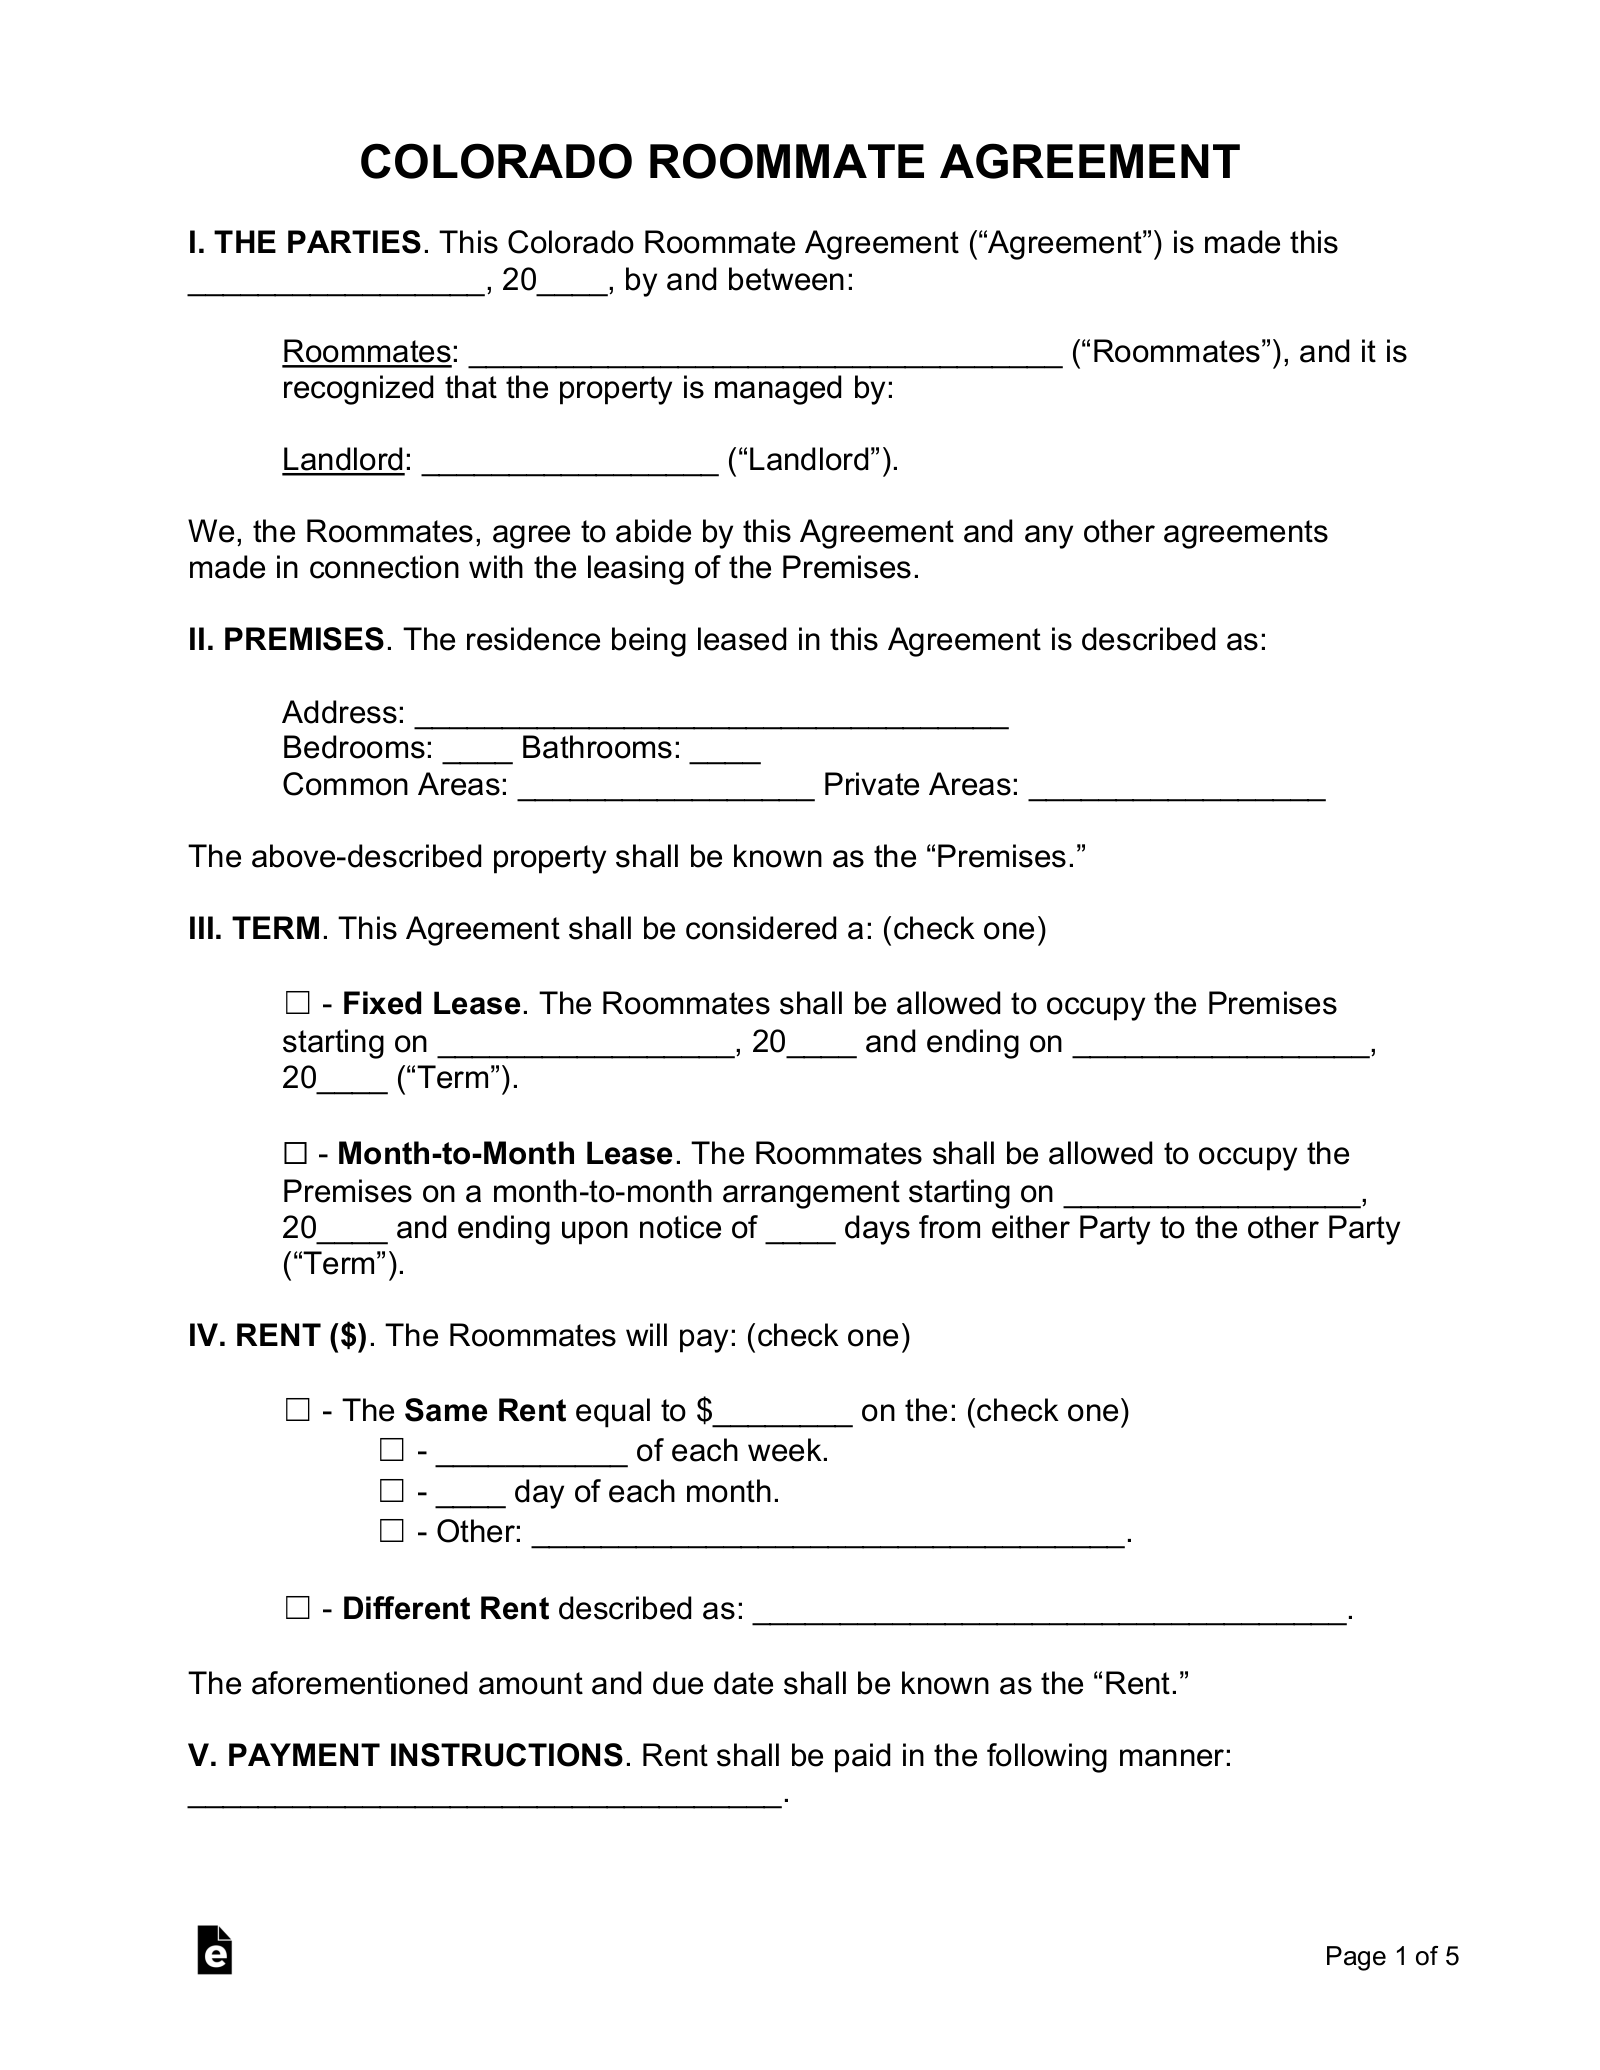 Free Colorado Roommate Room Rental Agreement Template